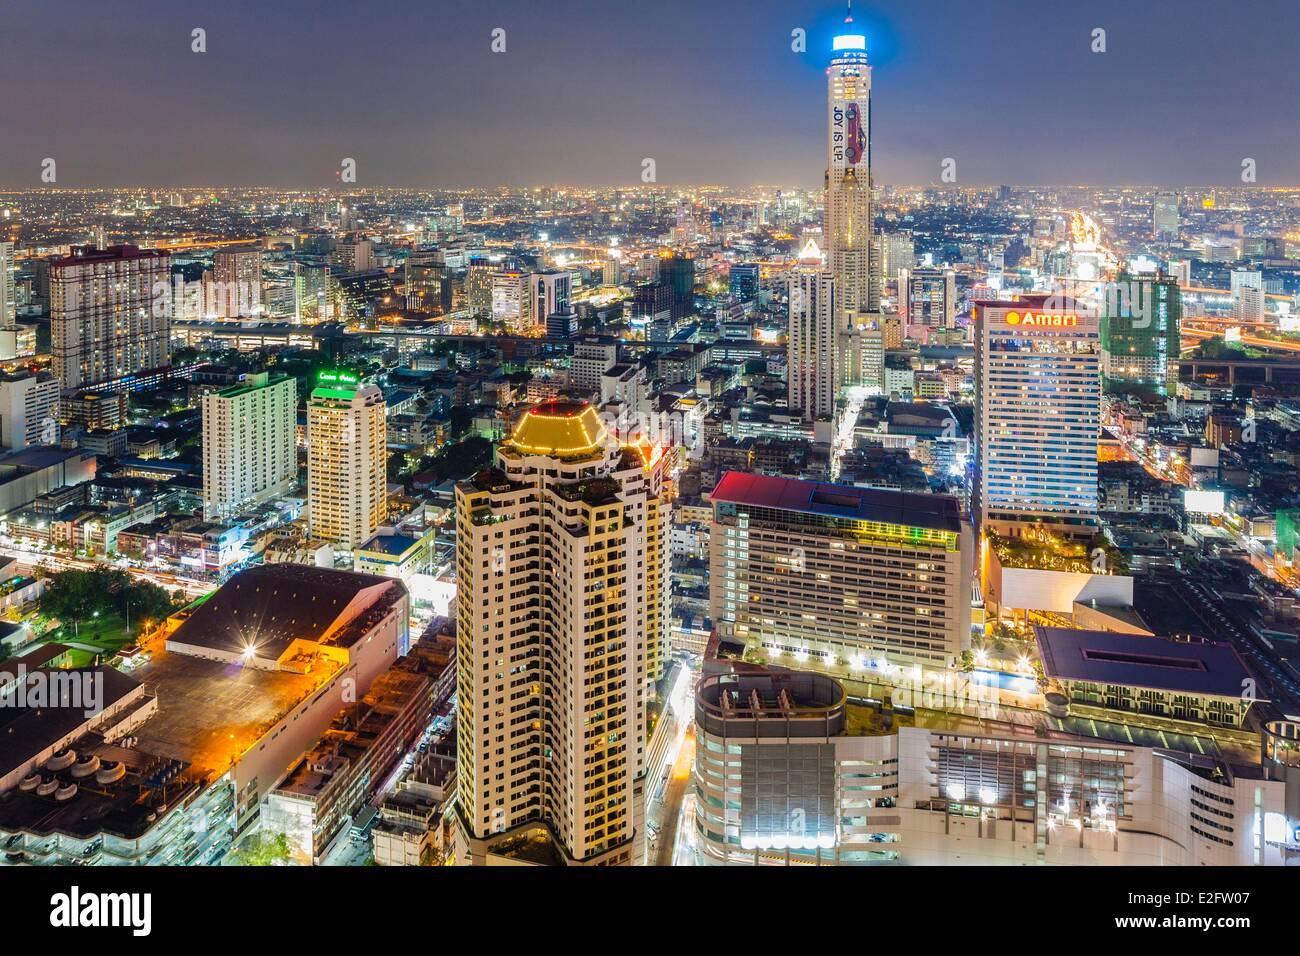 Thailand Bangkok overlooking the city center from the Red Sky restaurant on the roof of Centara Grand at CentralWorld - Stock Image